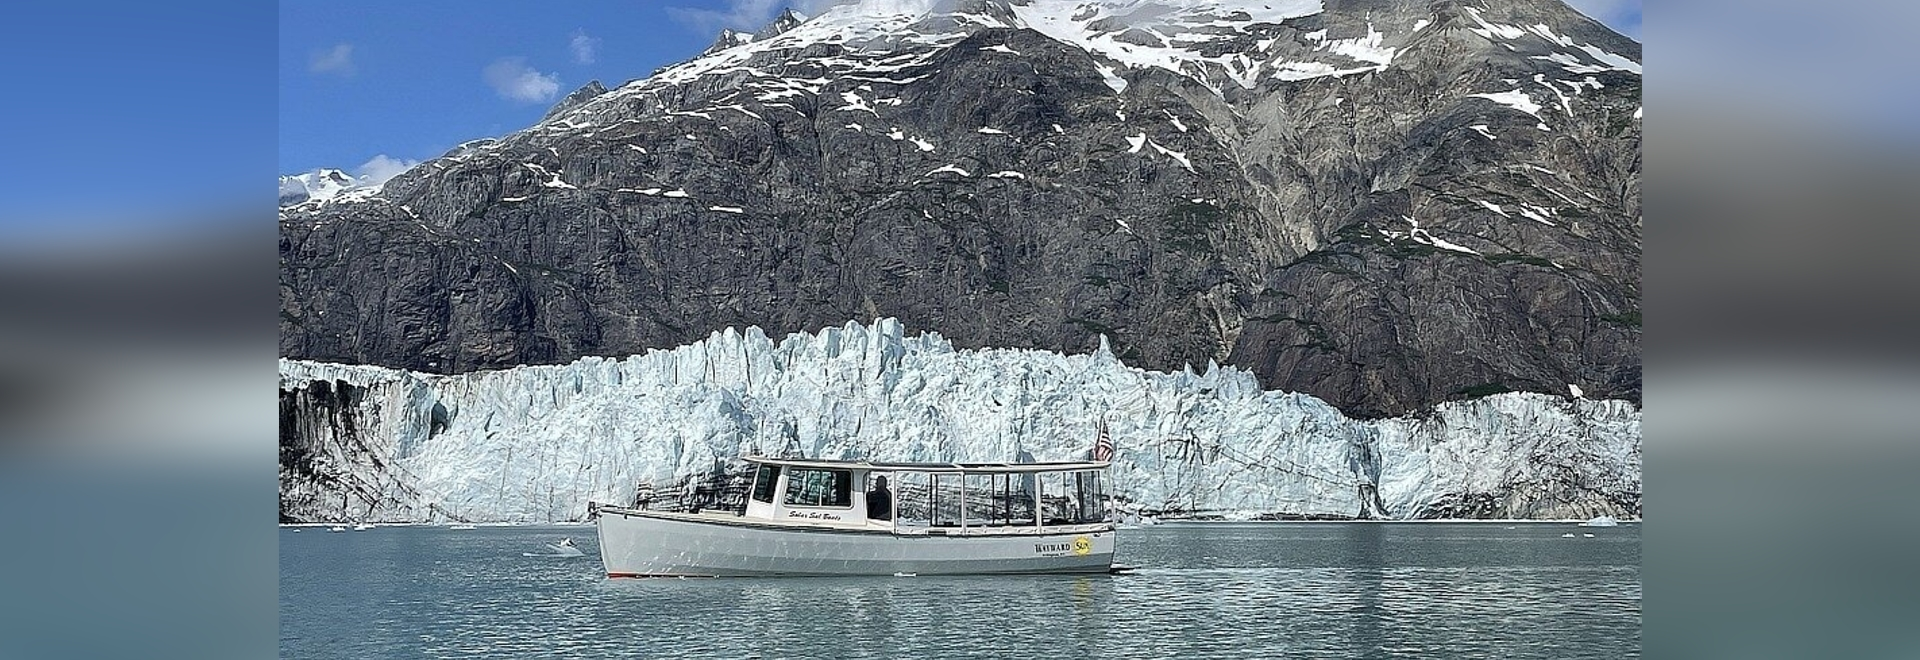 Electric Boat Completes 1,400 Mile Voyage to Alaska under 100% Solar Power